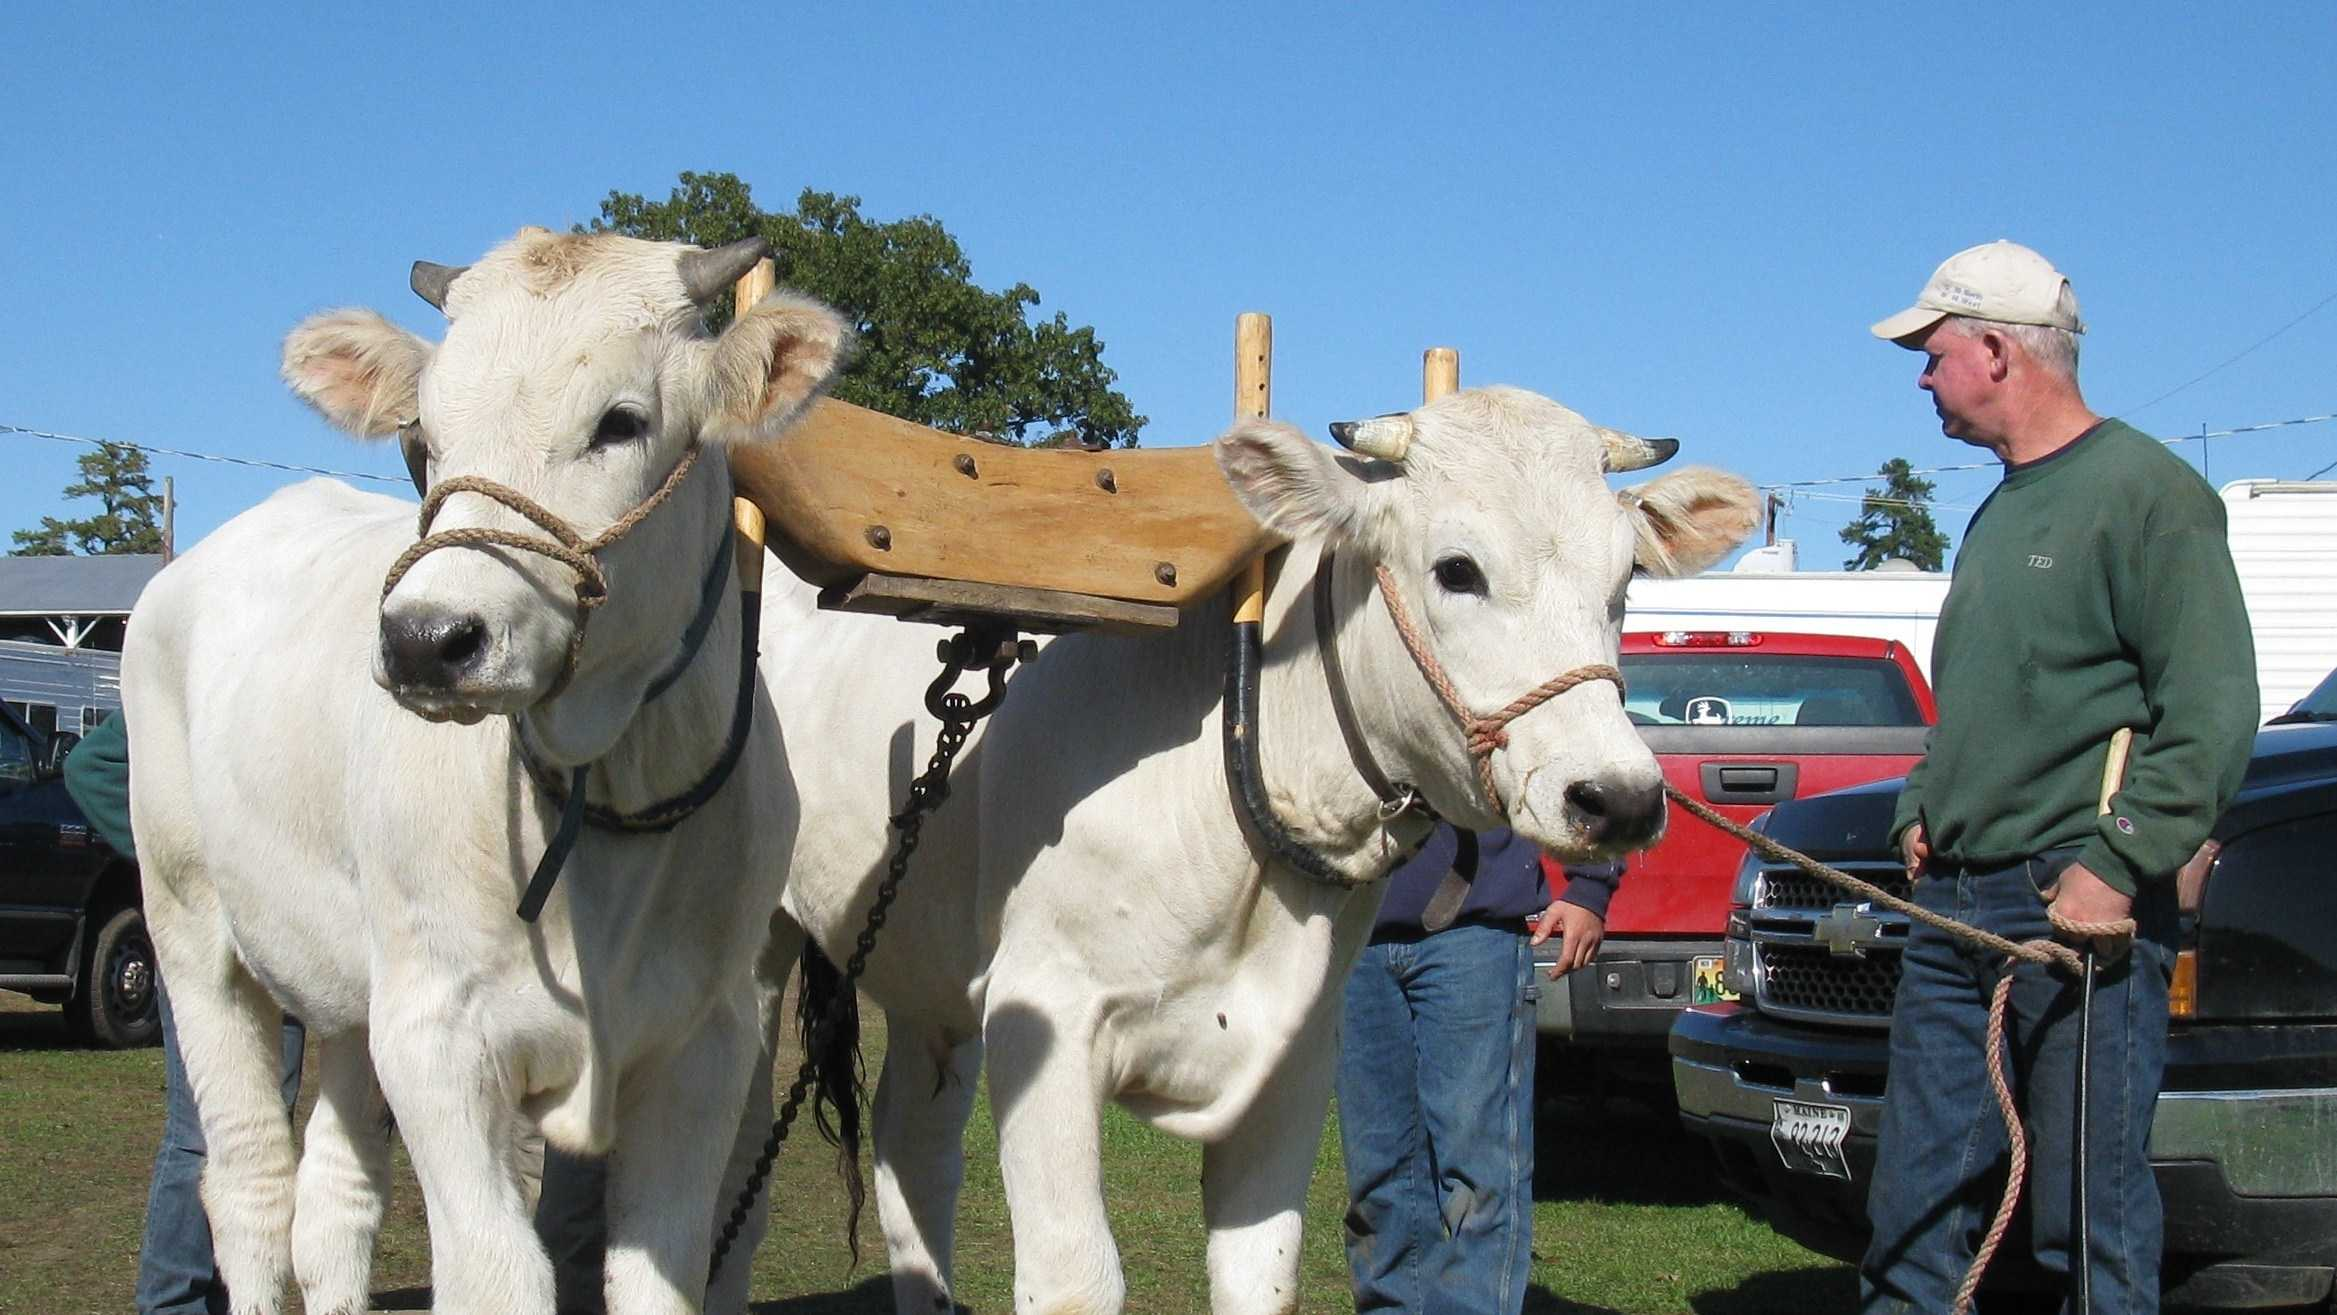 The Fryeburg Fair kicks off Sunday Sept. 29 and runs through Sunday Oct. 6. at the Fryeburg Fairgrounds. It is Maine's largest agricultural fair. Click here for more information.